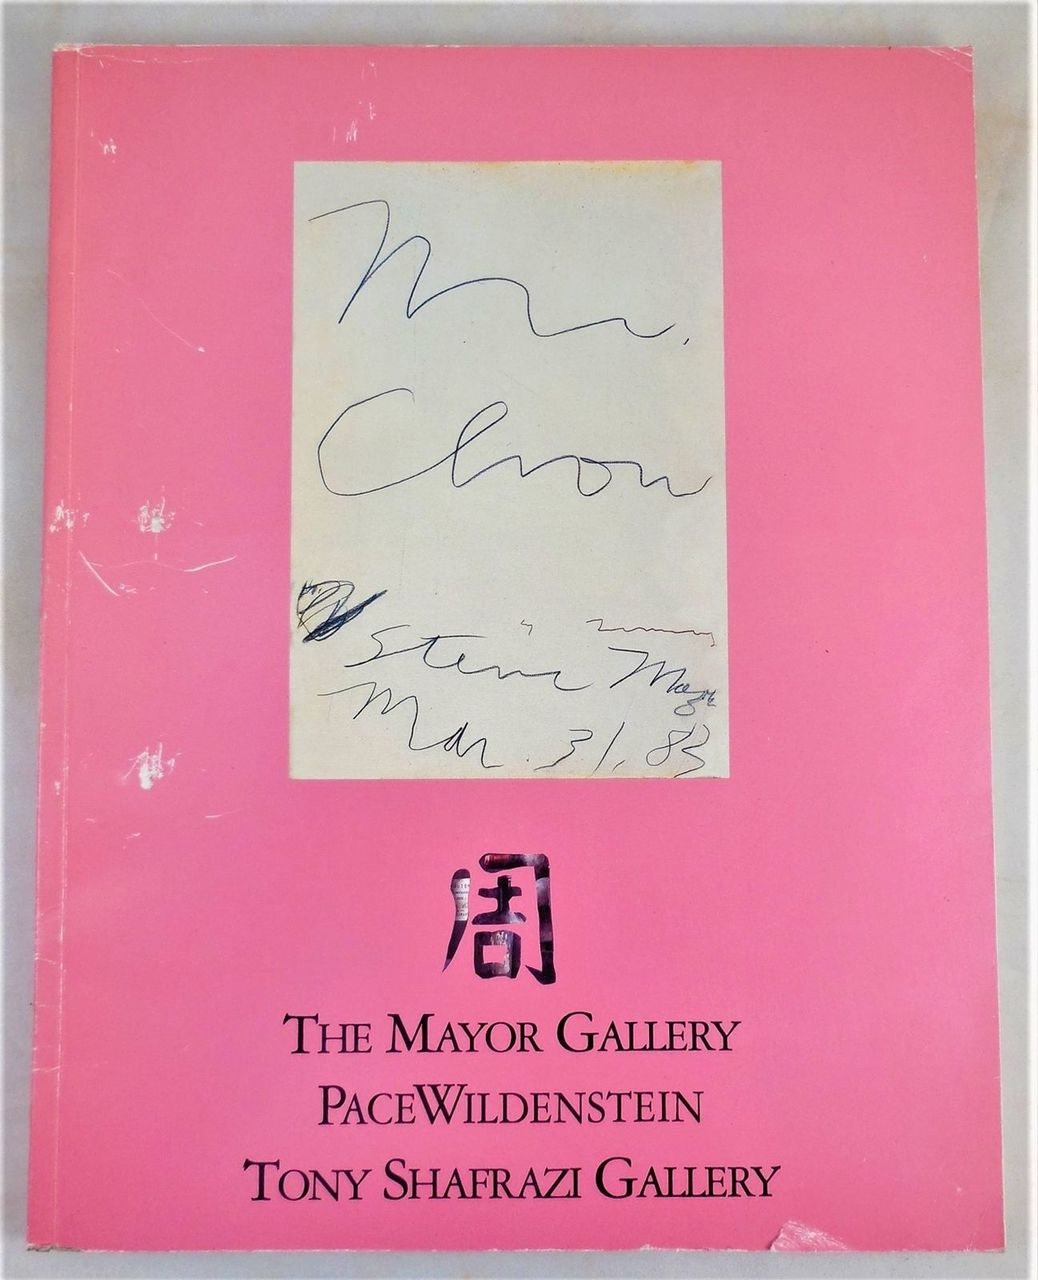 30TH ANNIVERSARY OF MR CHOW PORTRAIT COLLECTION - 1998